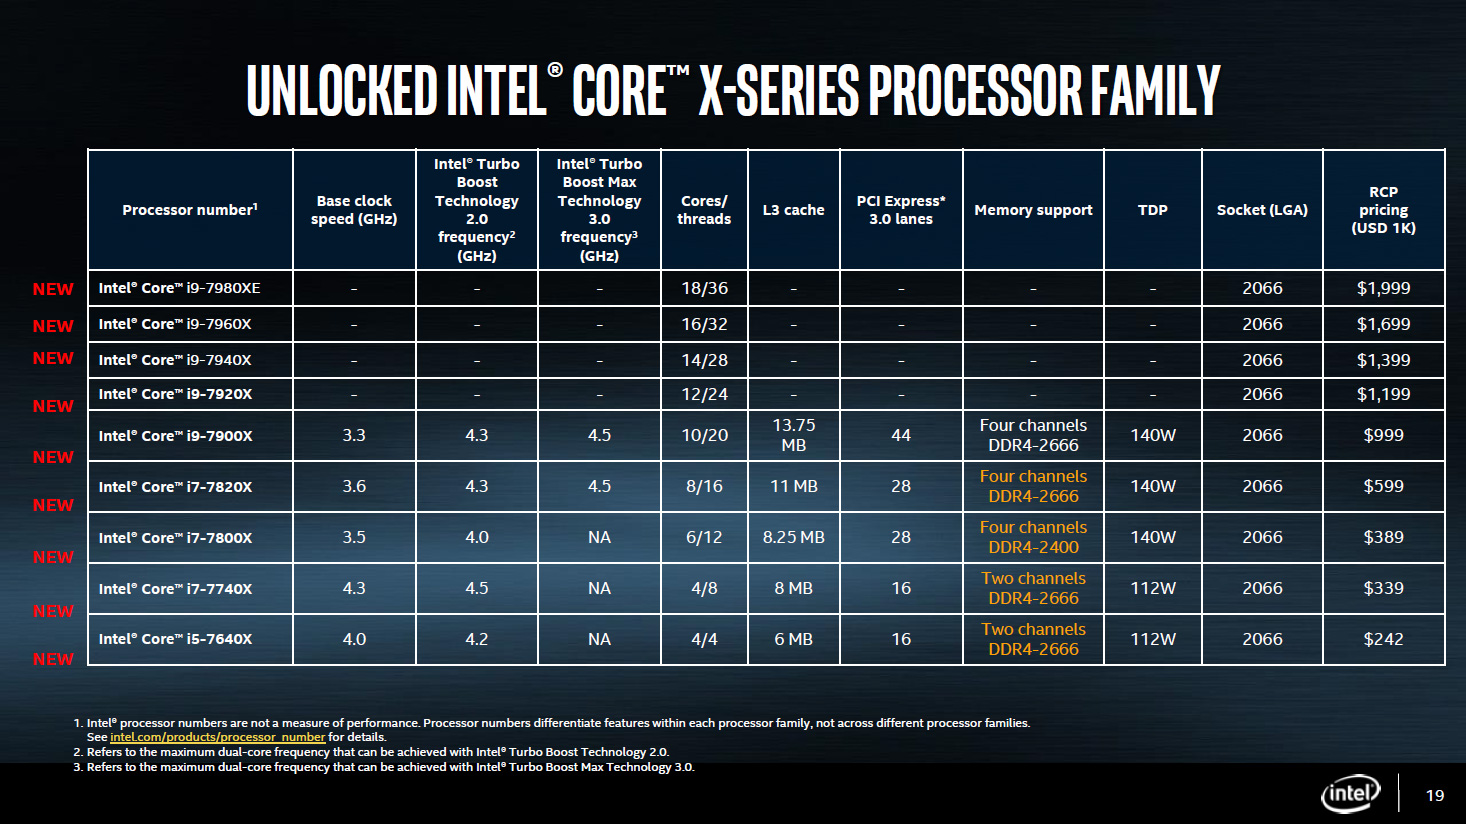 intel core x line-up